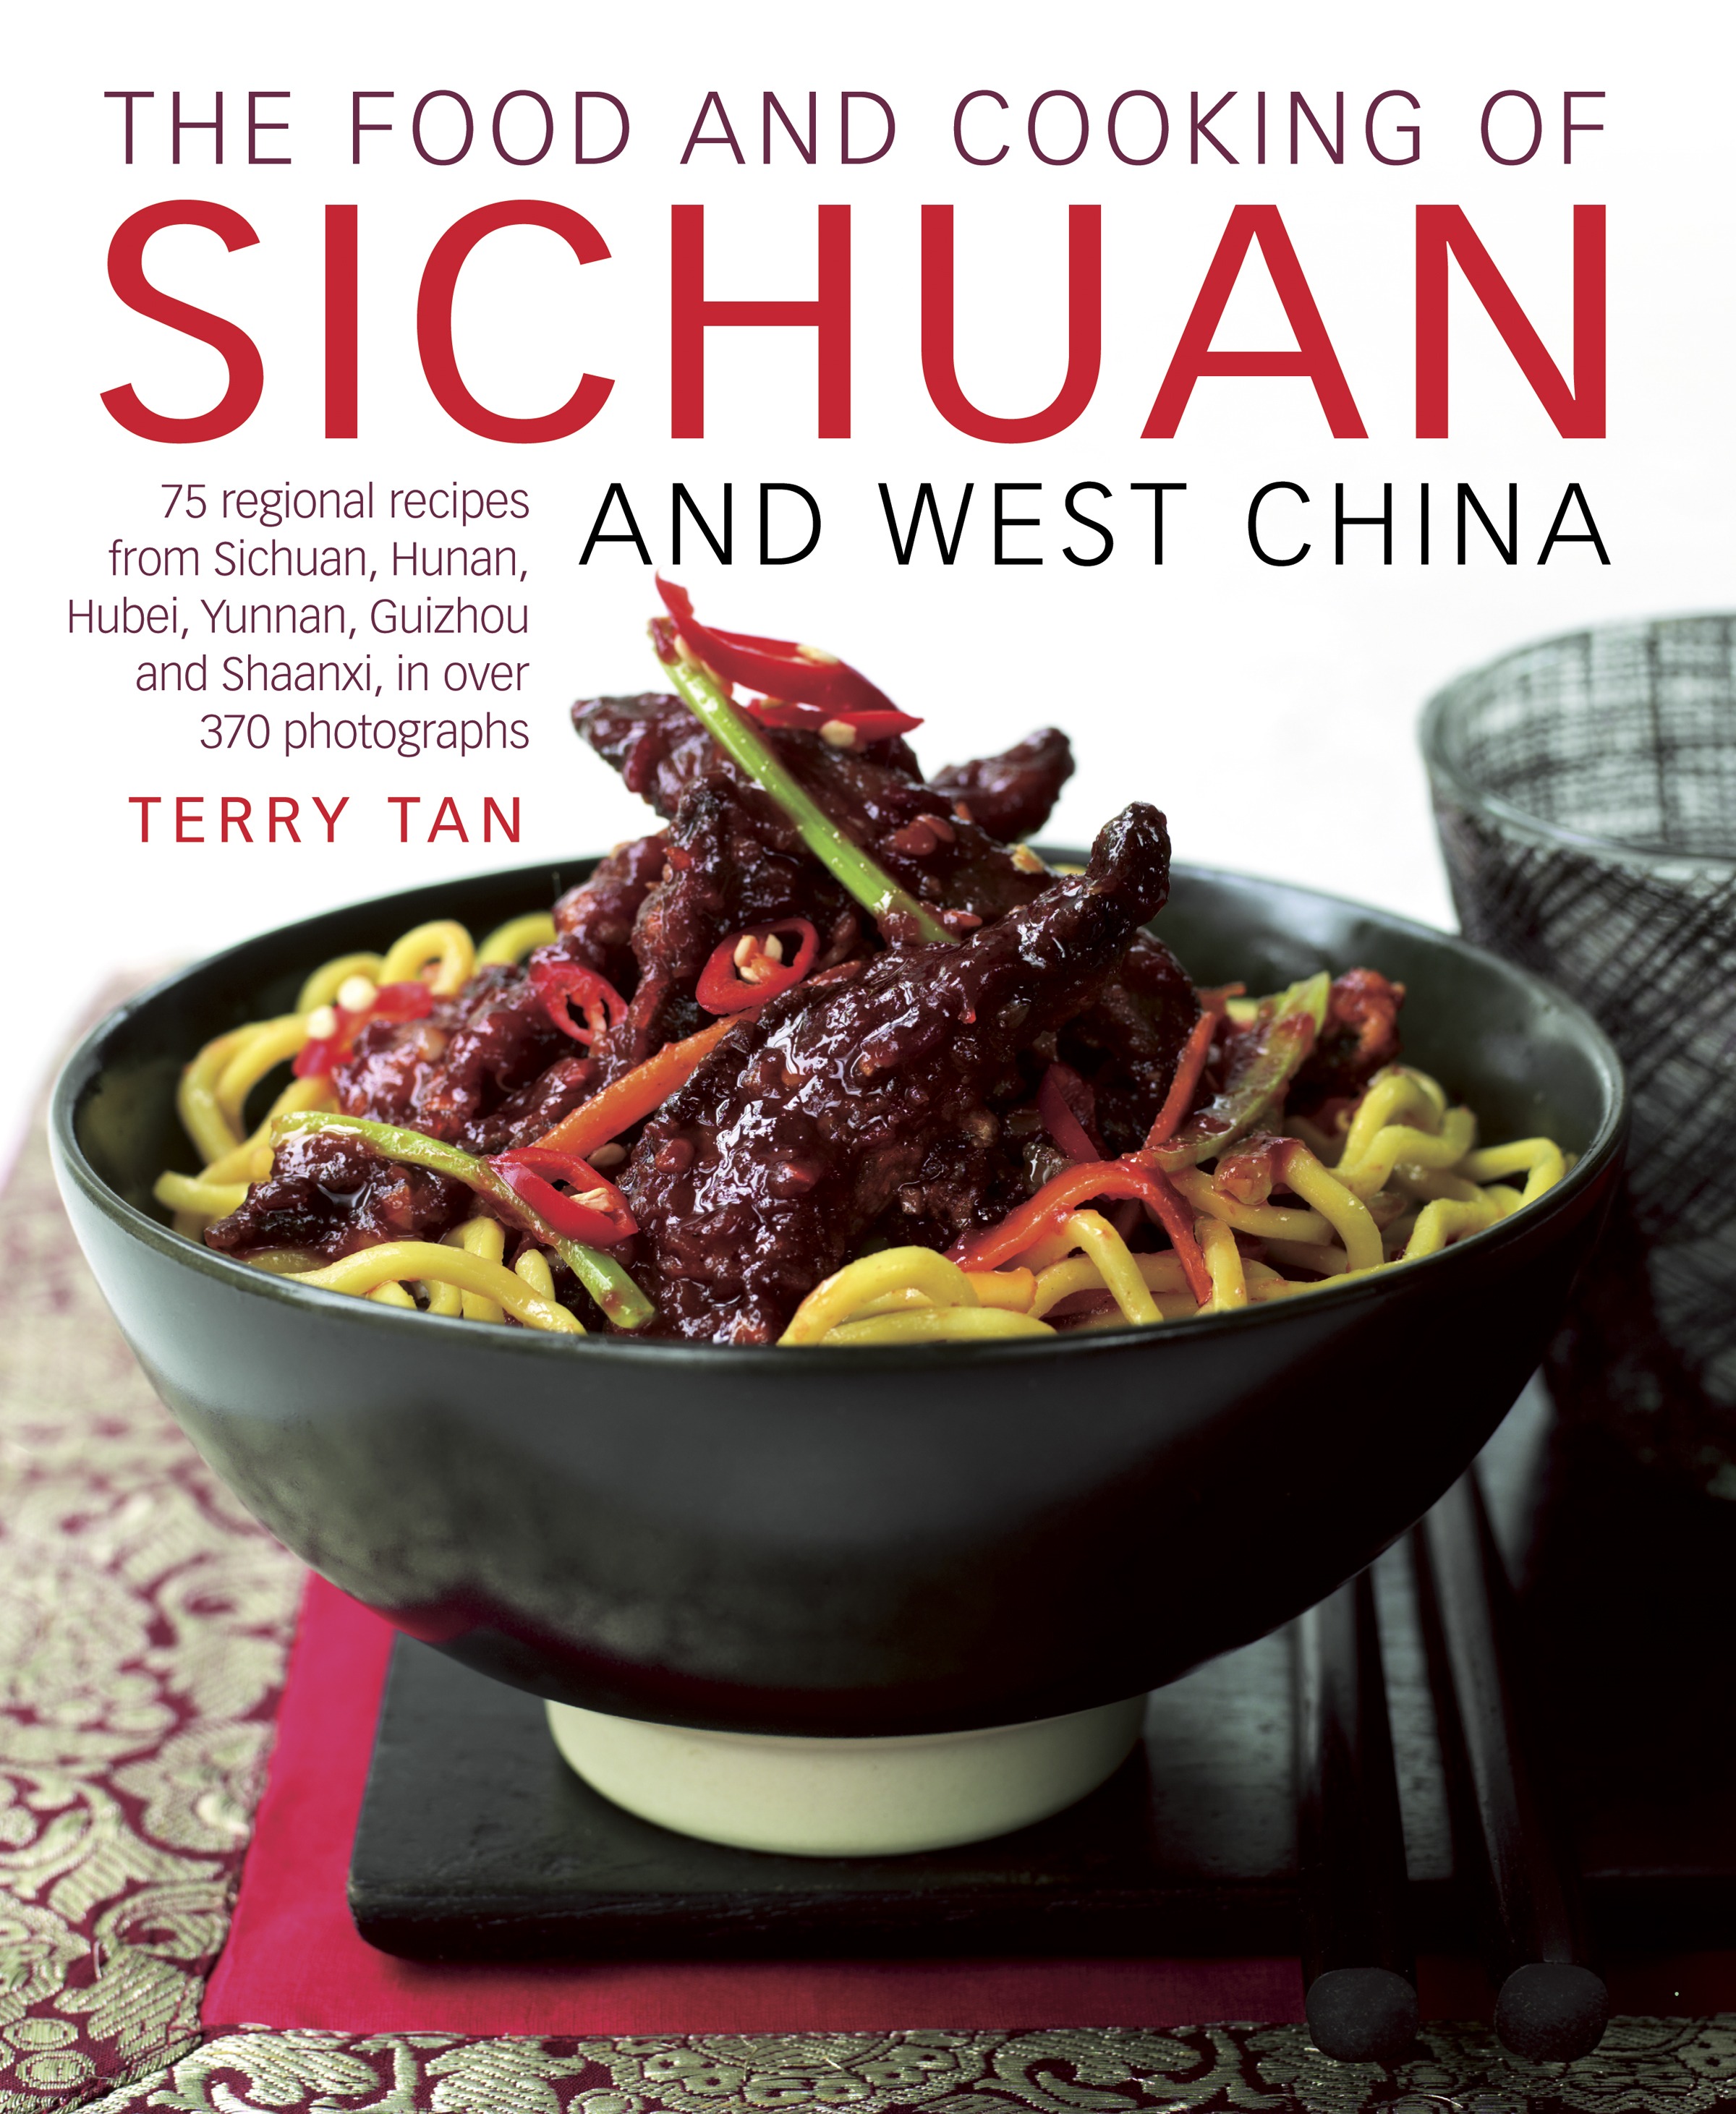 The Food and Cooking of Sichuan and West China 75 Regional Recipes from Sichuan,  Hunan,  Hubei,  Yunnan,  Guizhou and Shaanxi,  in over 370 Photographs